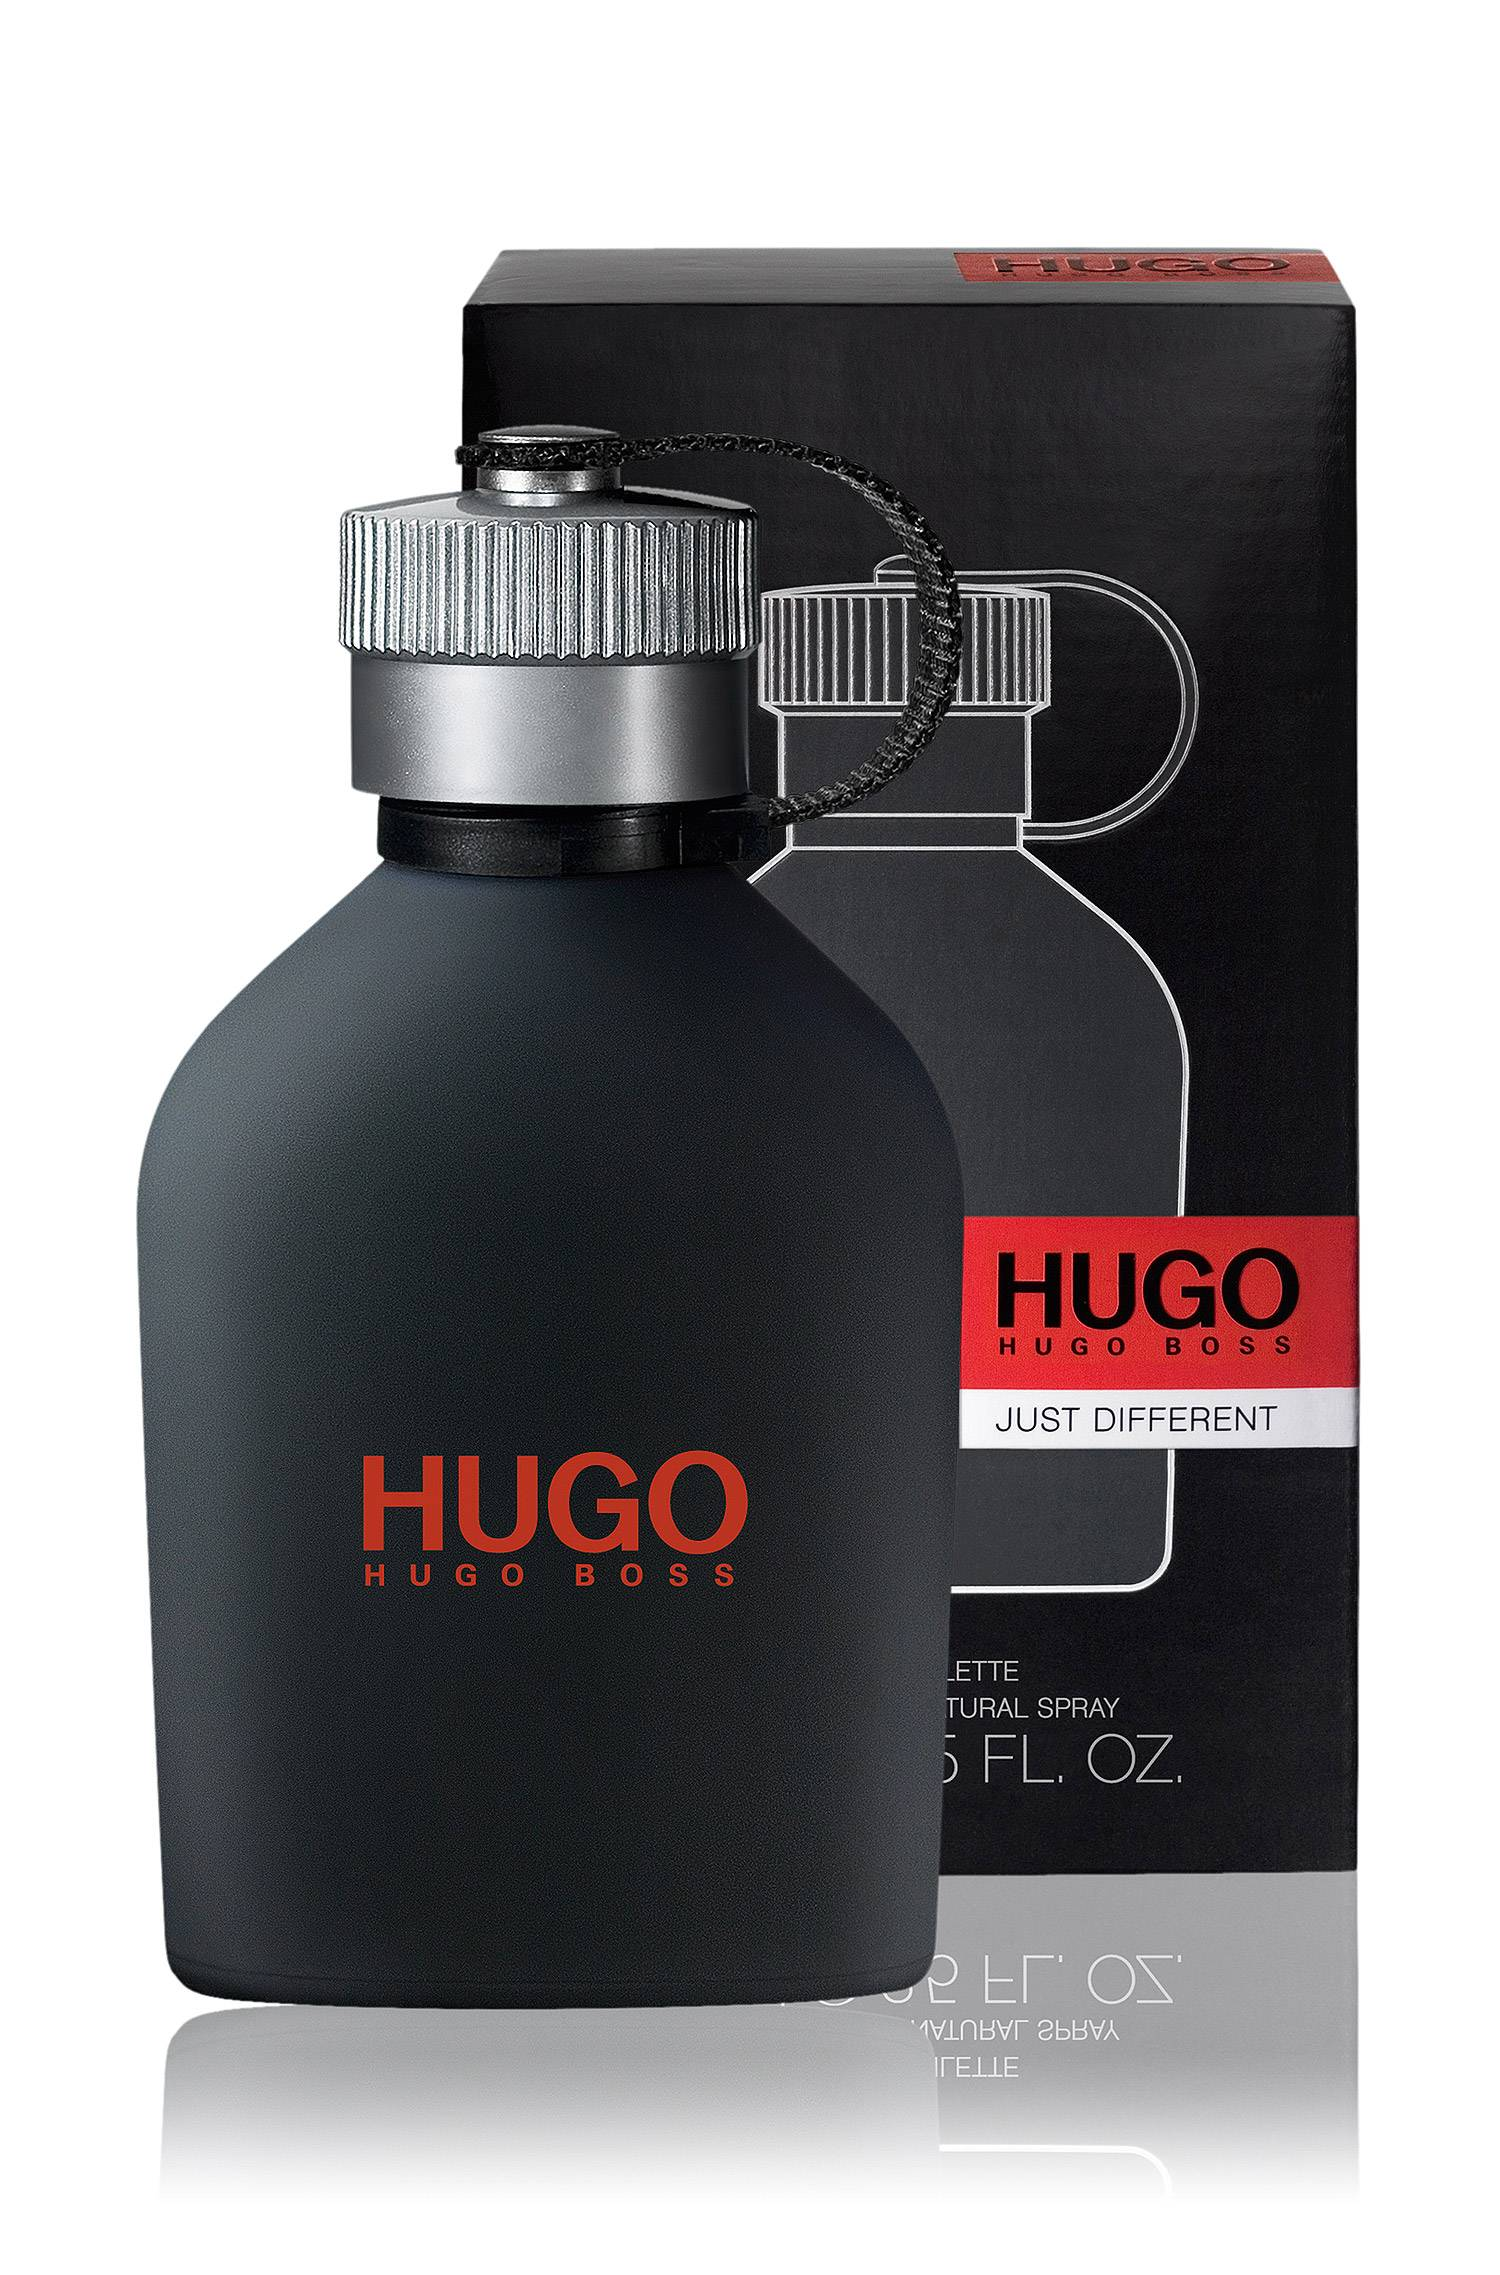 HUGO Just Different eau de toilette 75ml